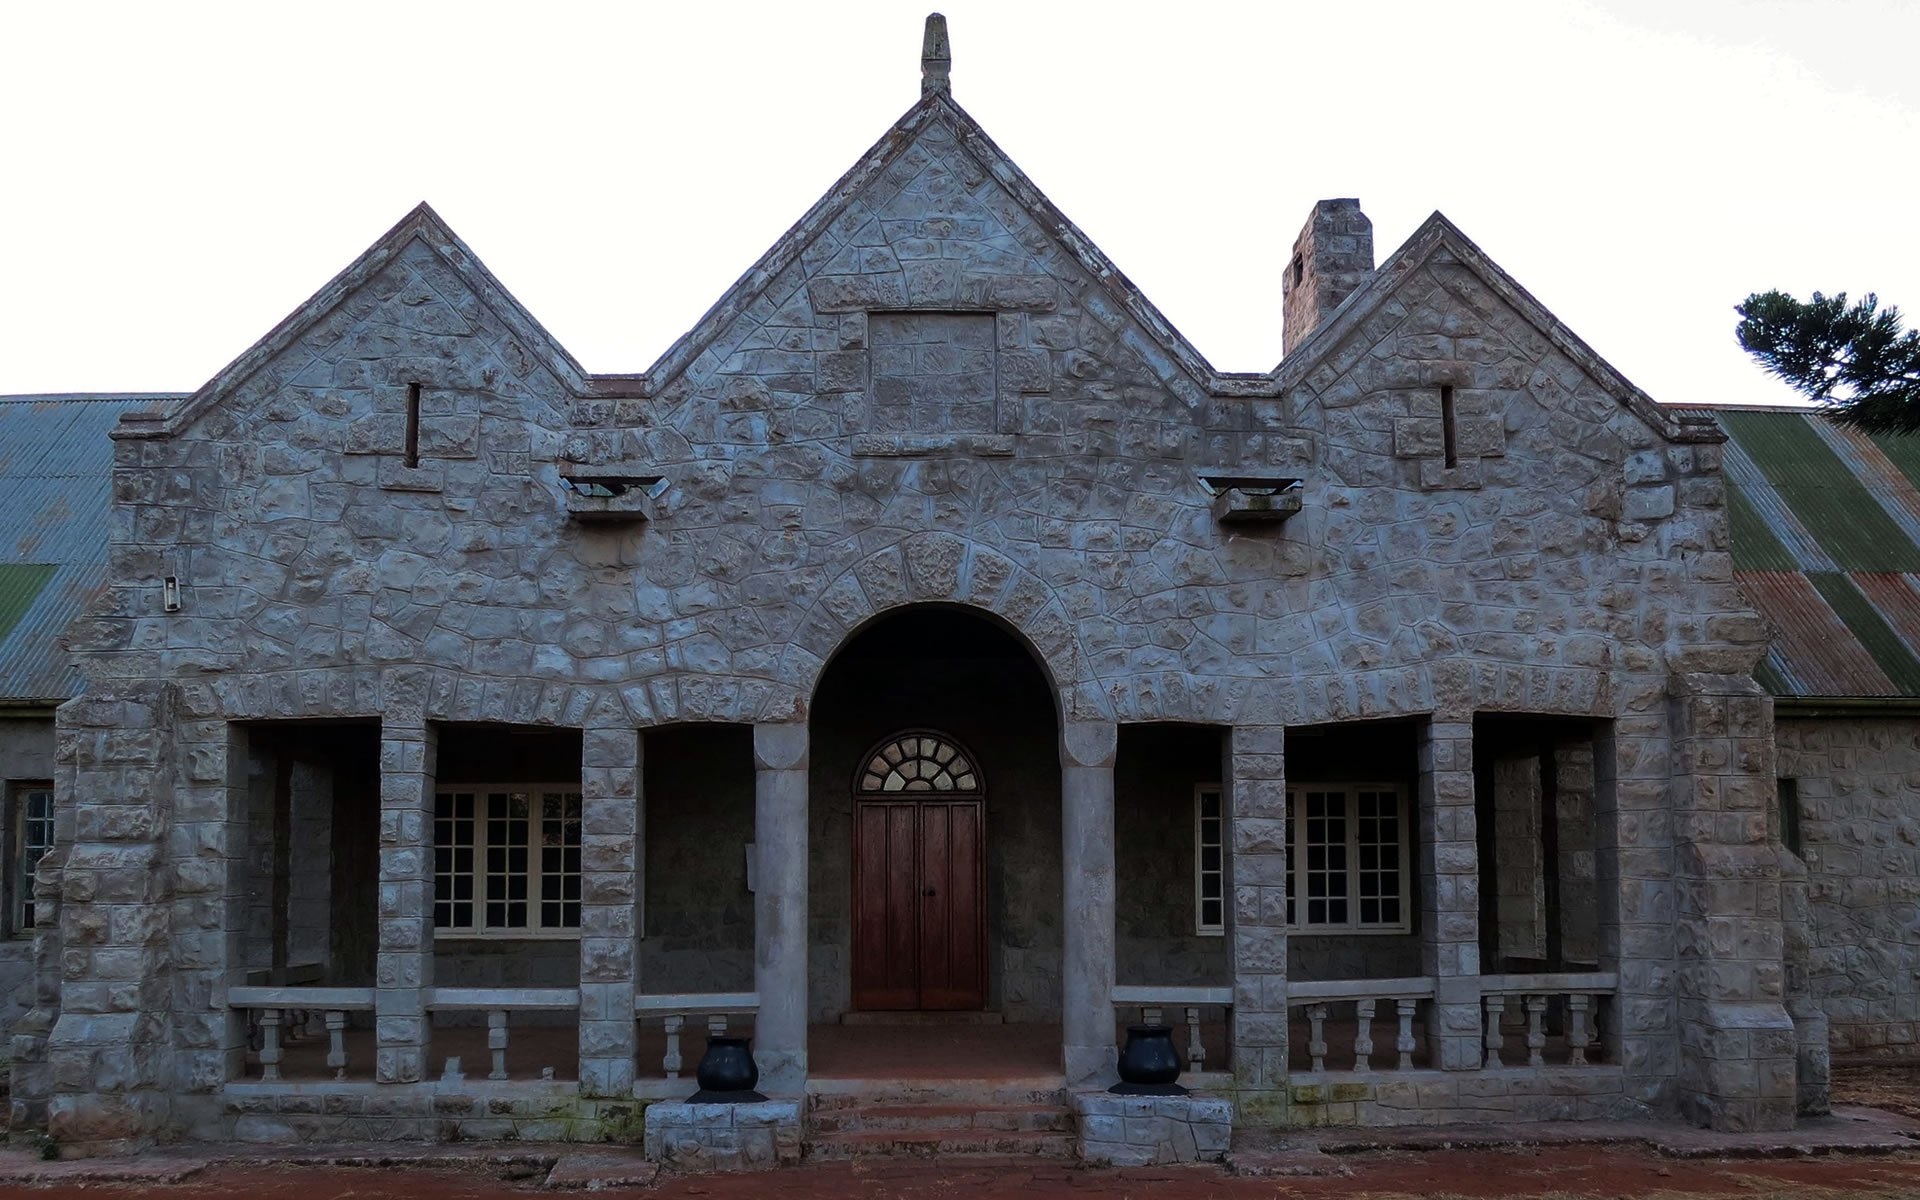 The 32-roomed Mcmillan Castle at Ol Donyo Sabuk National Park is a single-storied, high ceiling piece of early 20th-century architecture with underground bunkers built in the 1900s by Lord William Northrop Mcmillan.